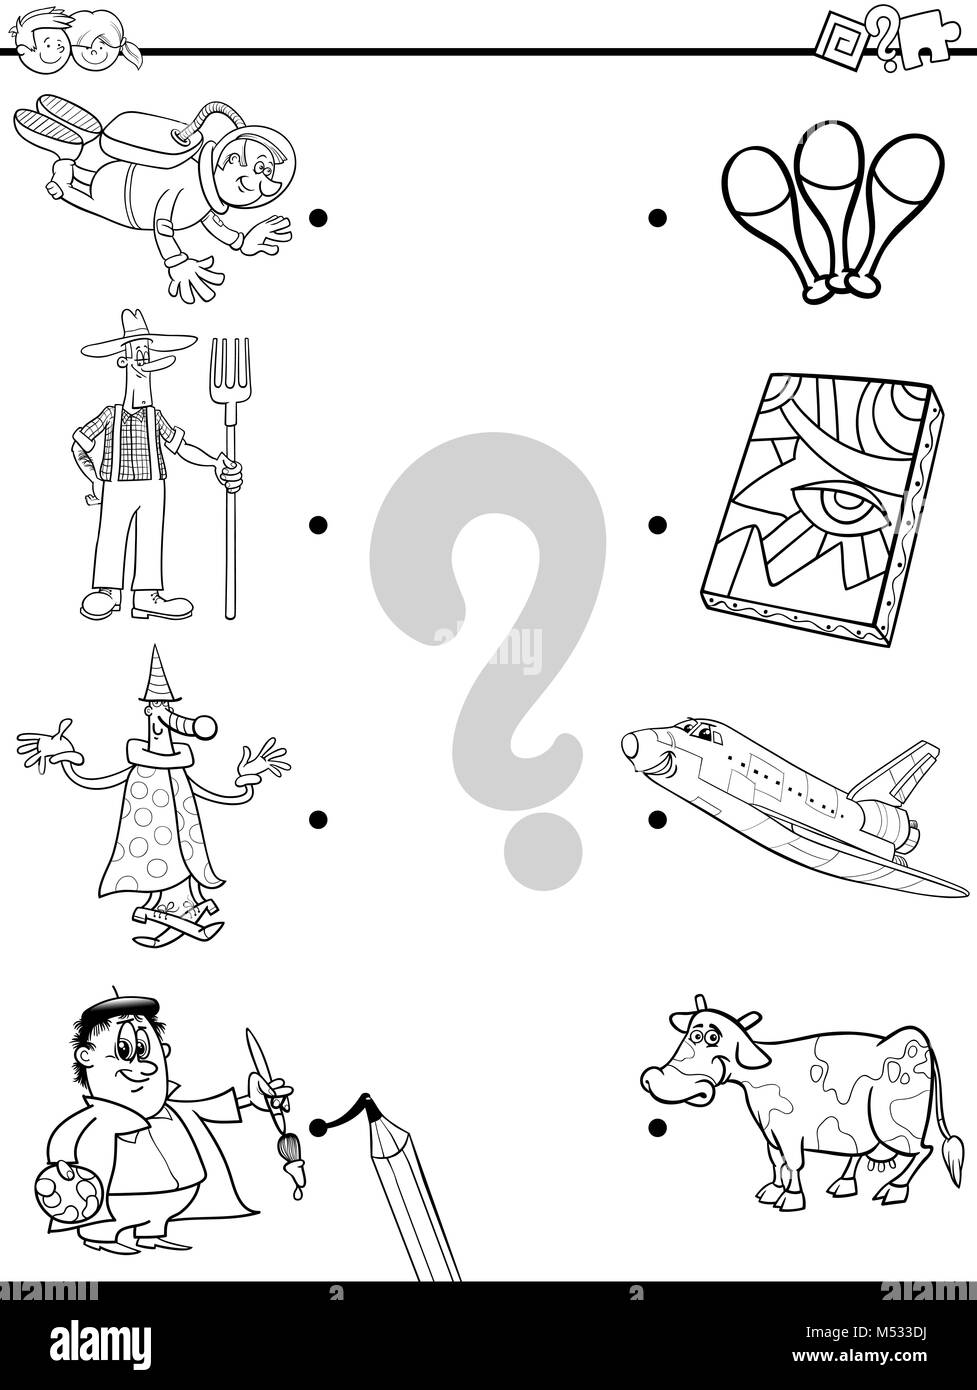 match people and objects coloring book - Stock Image